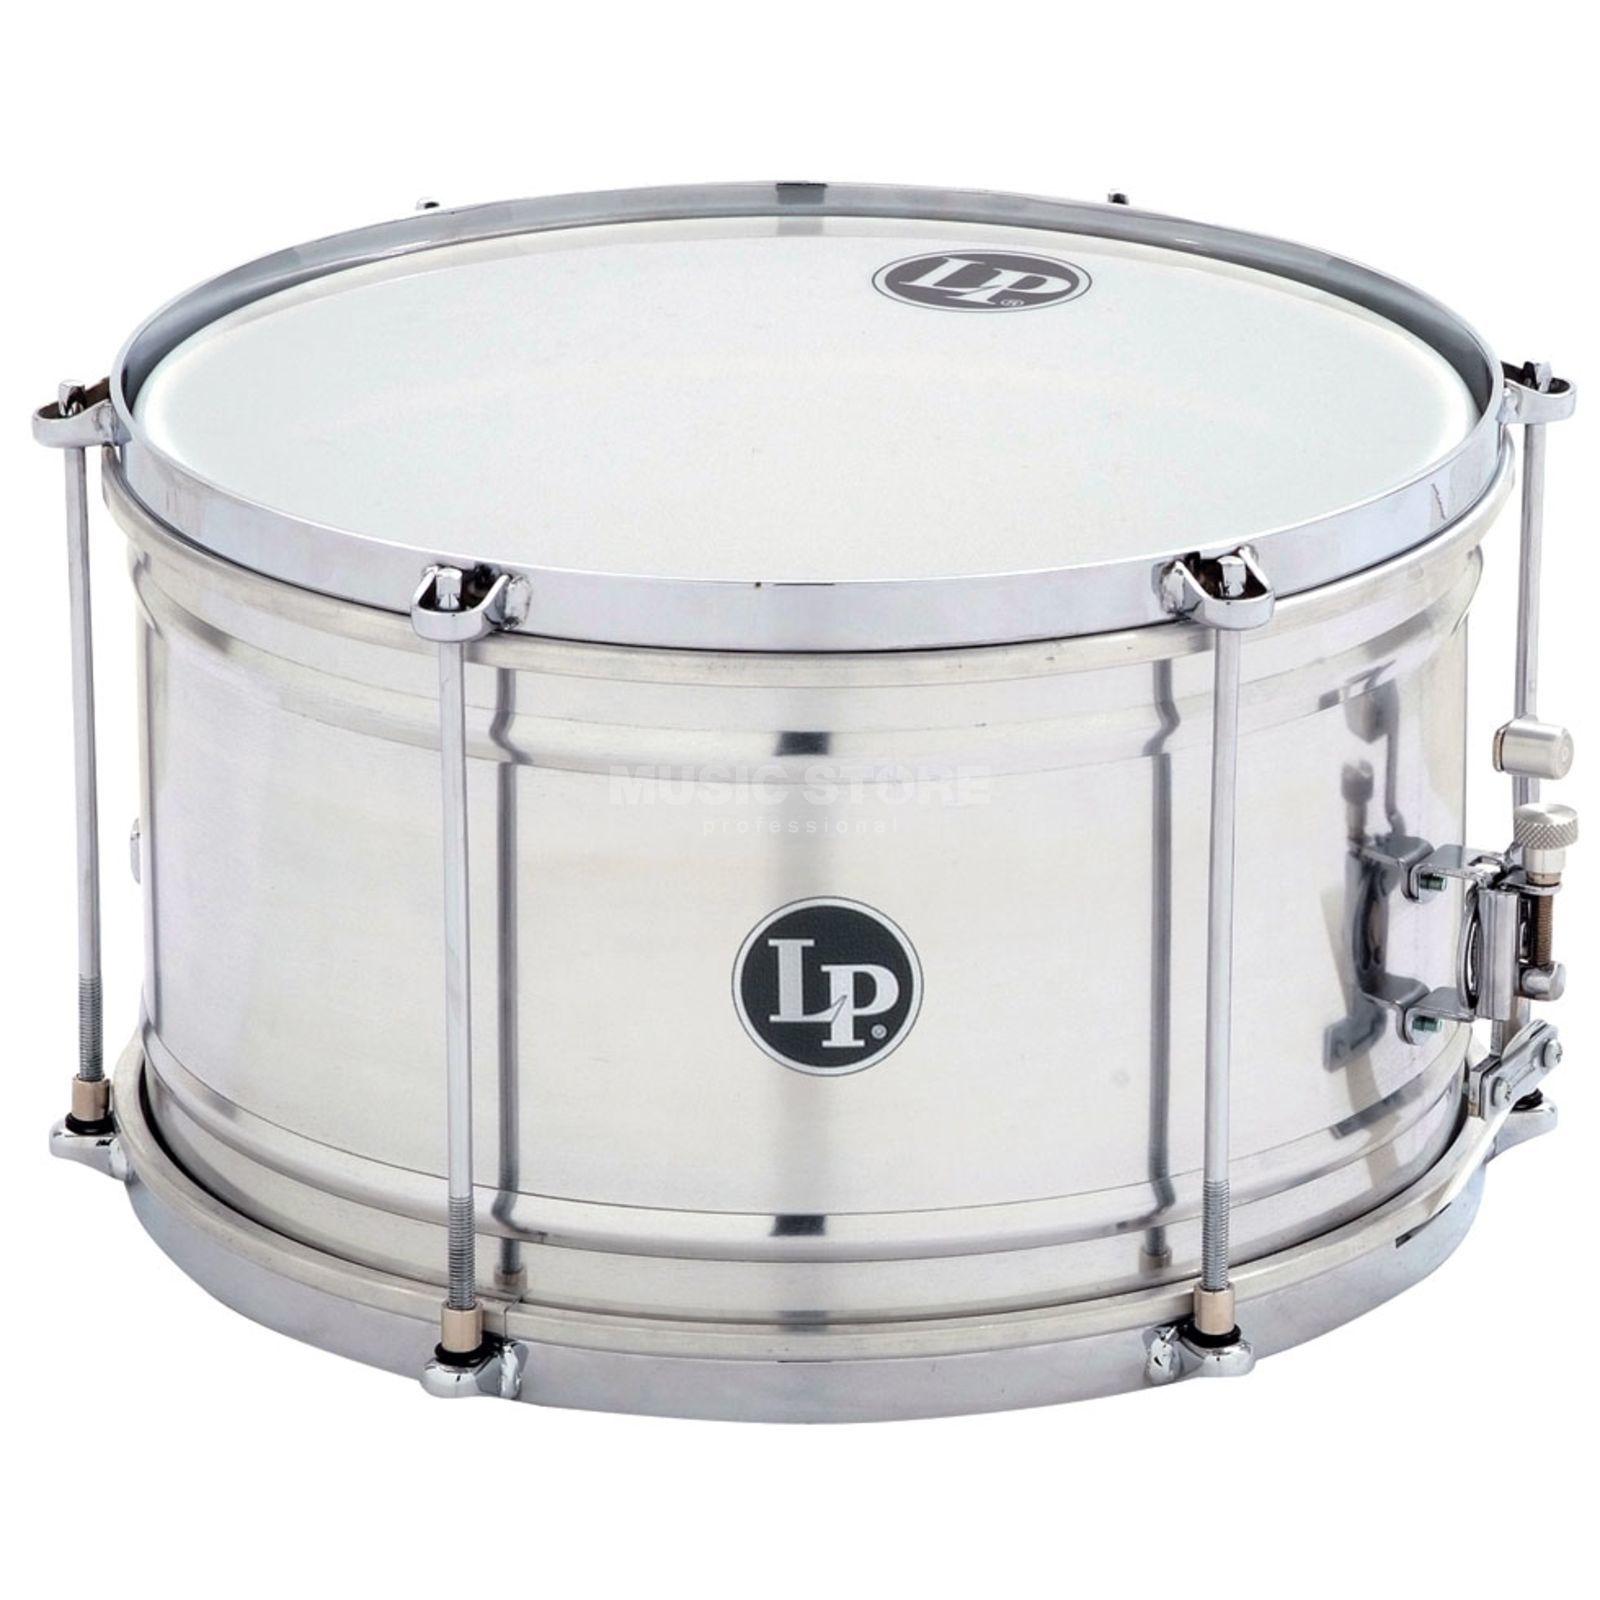 "Latin Percussion Caixa LP3212, 12""x7"", Aluminium Product Image"